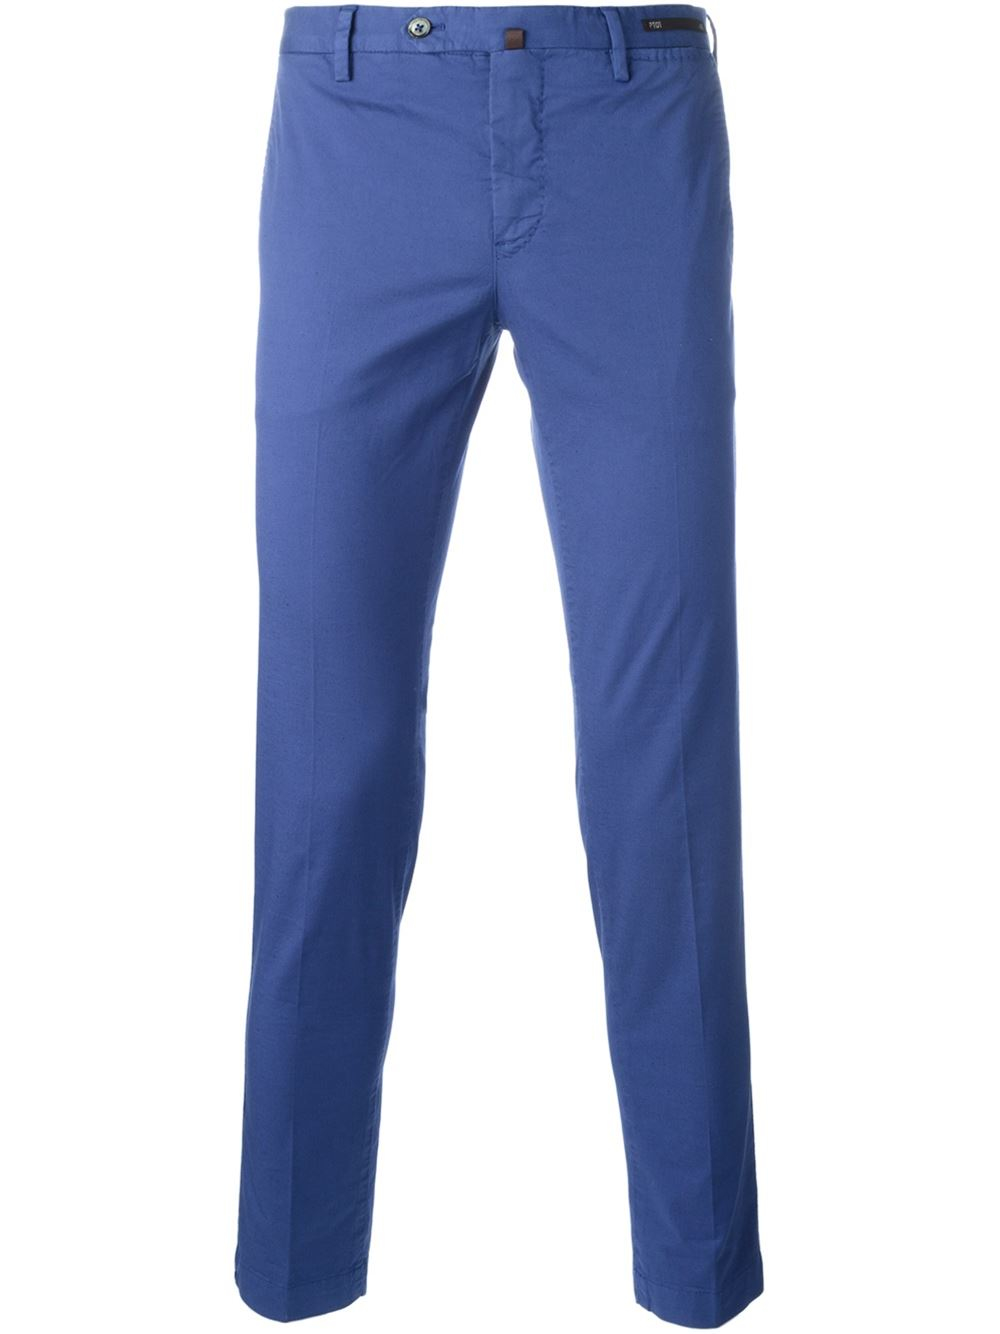 What to Wear with Blue Chinos. Just like jeans, blue chinos have a strong versatility, meaning they can be teamed up with a number of different looks. Blue chinos are also a key item in men's summer fashion. If you're wondering what t o wear with navy chinos, as well as brighter, more vibrant ones, w e'll go through a few outfits to suit any style.